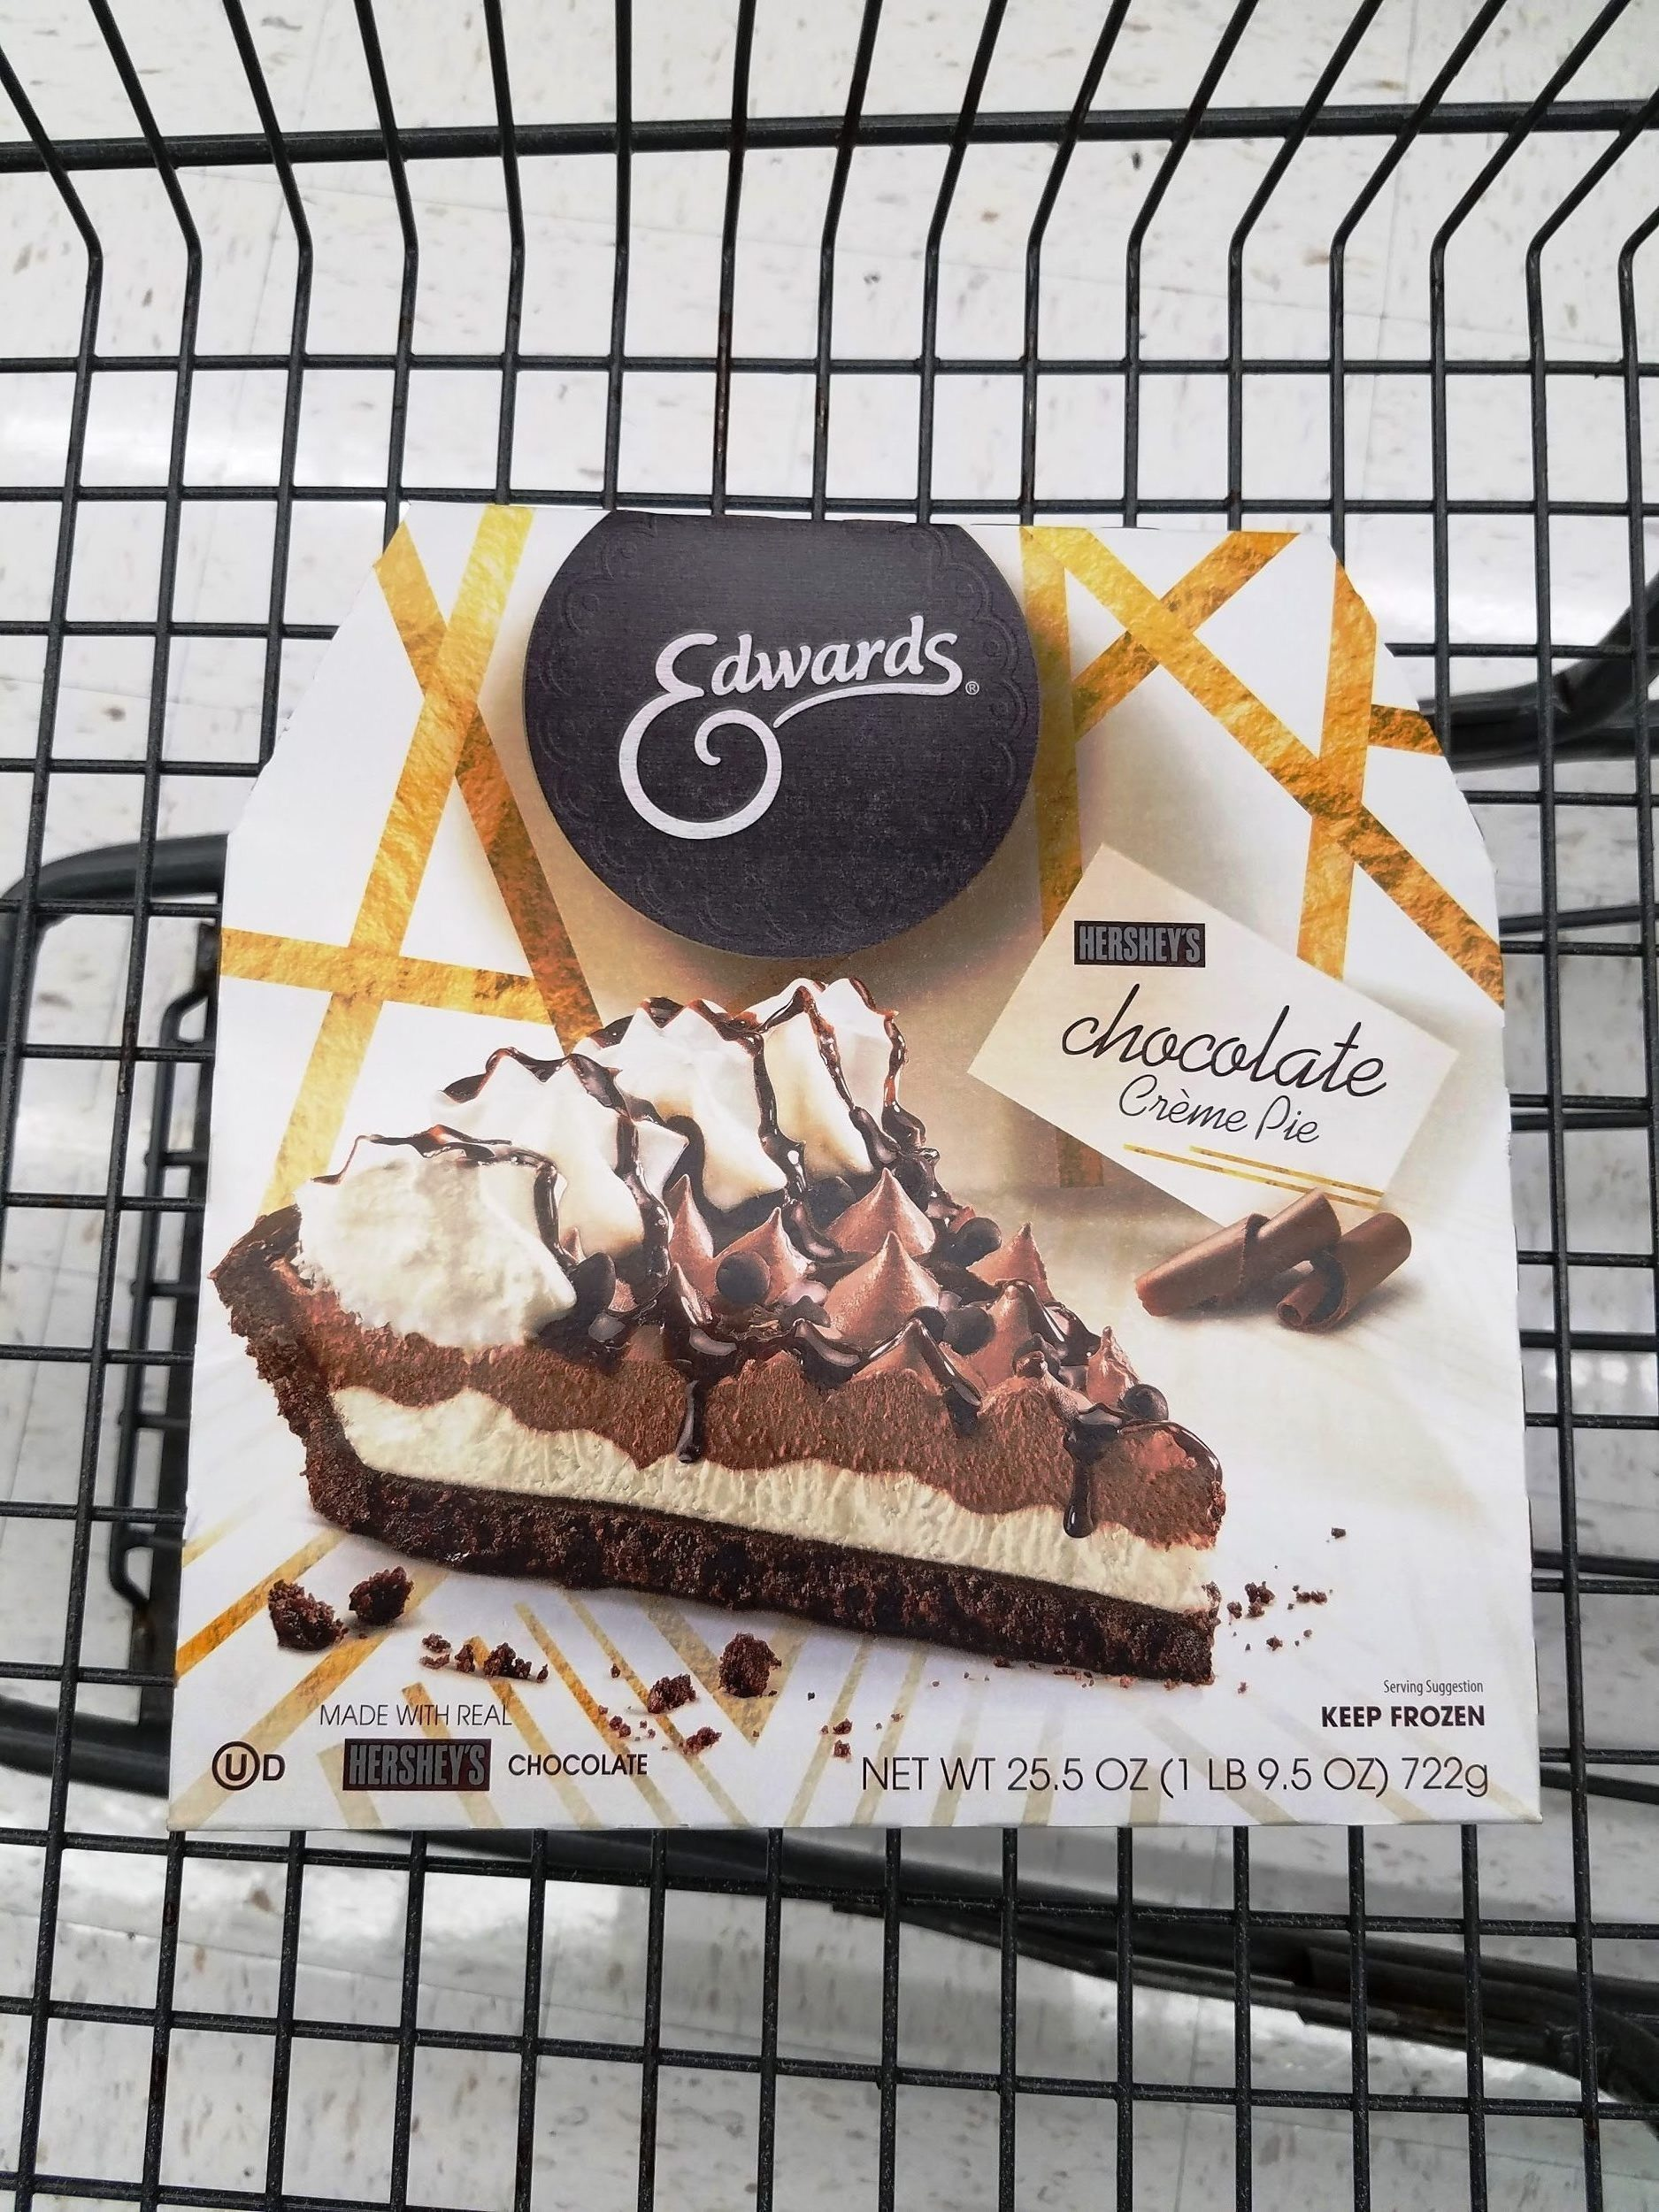 Edwards Hershey Chocolate Creme Pie